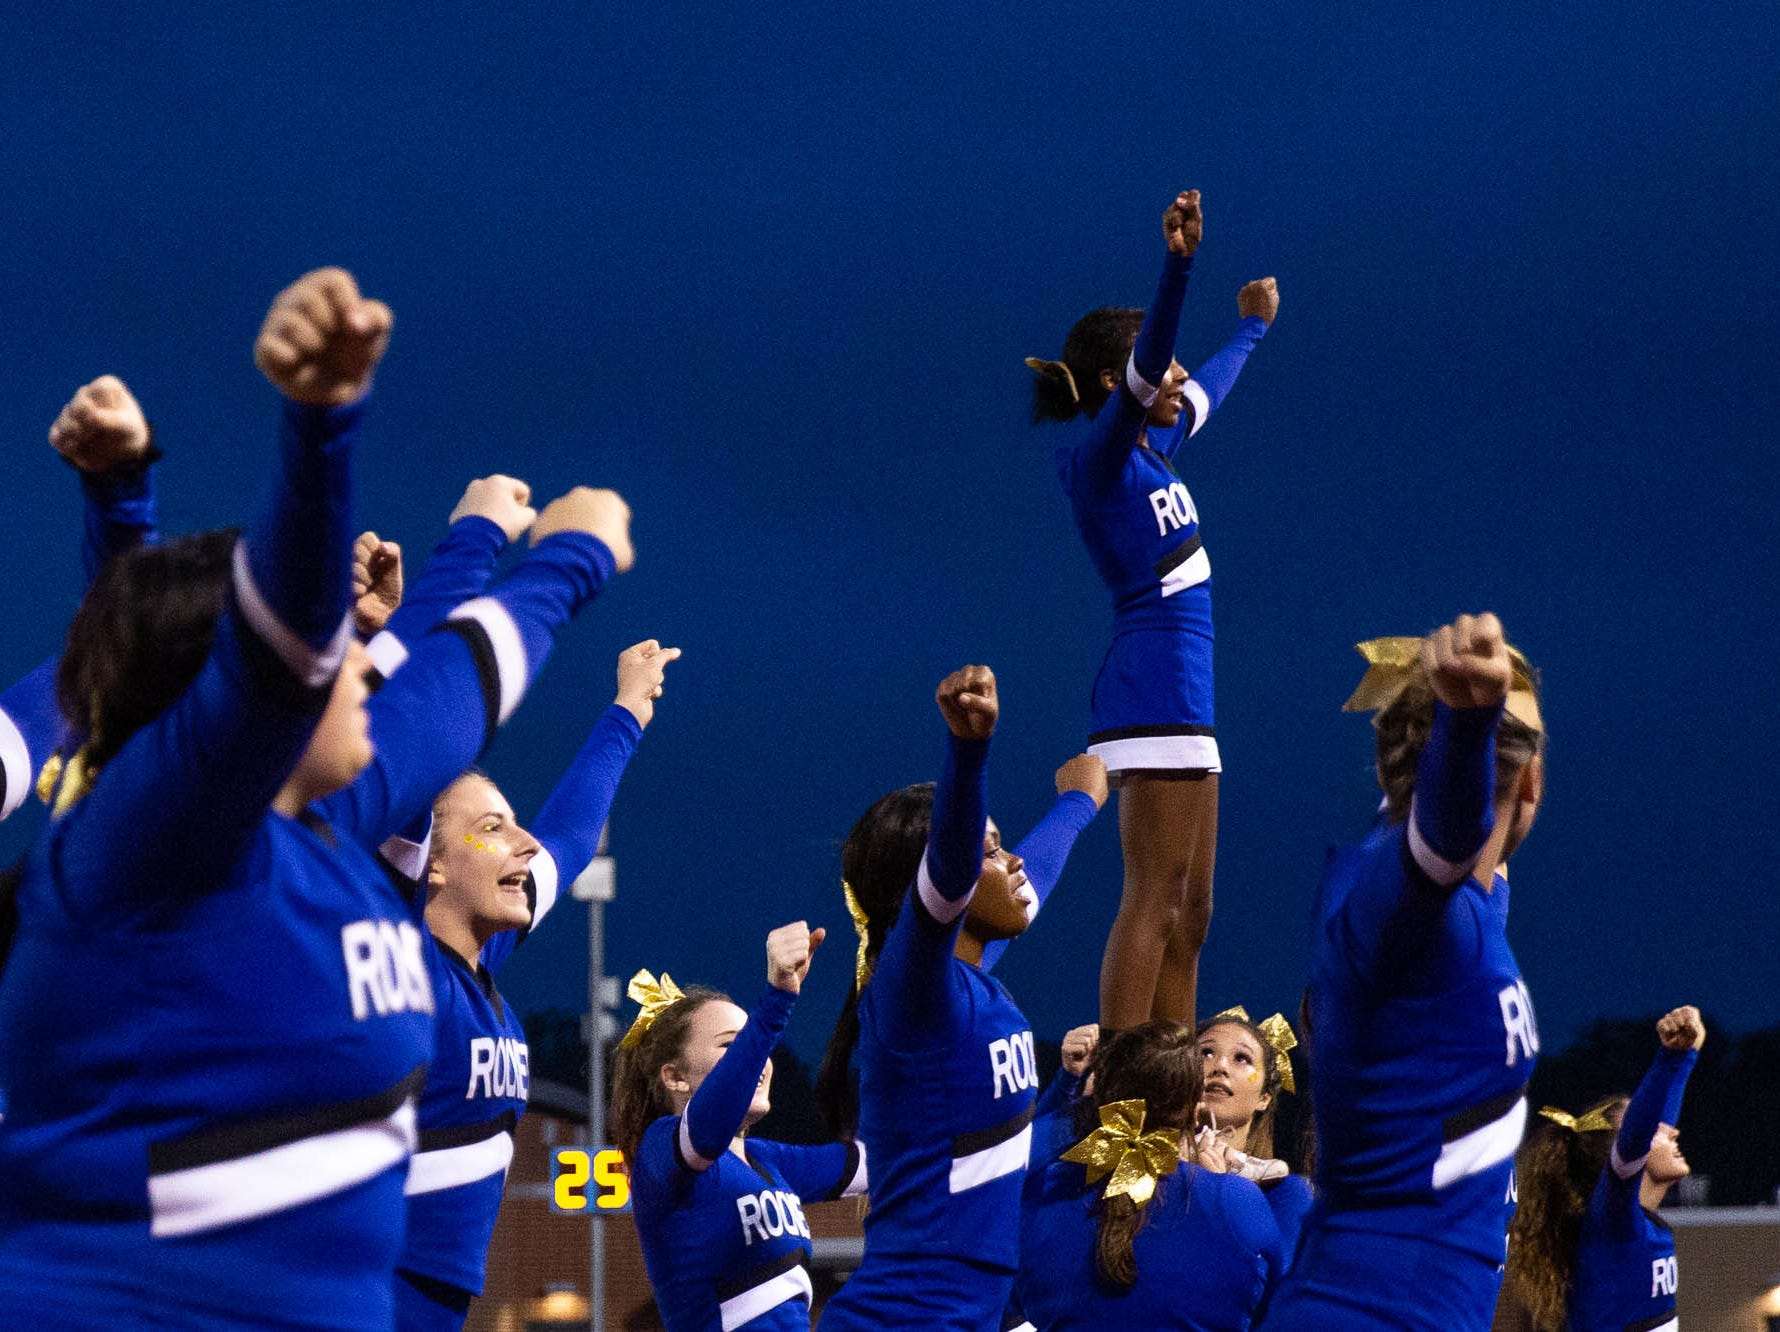 Spring Grove cheerleaders cheer during a football game between York High and Spring Grove, Friday, Sept. 21, 2018, in Spring Grove.